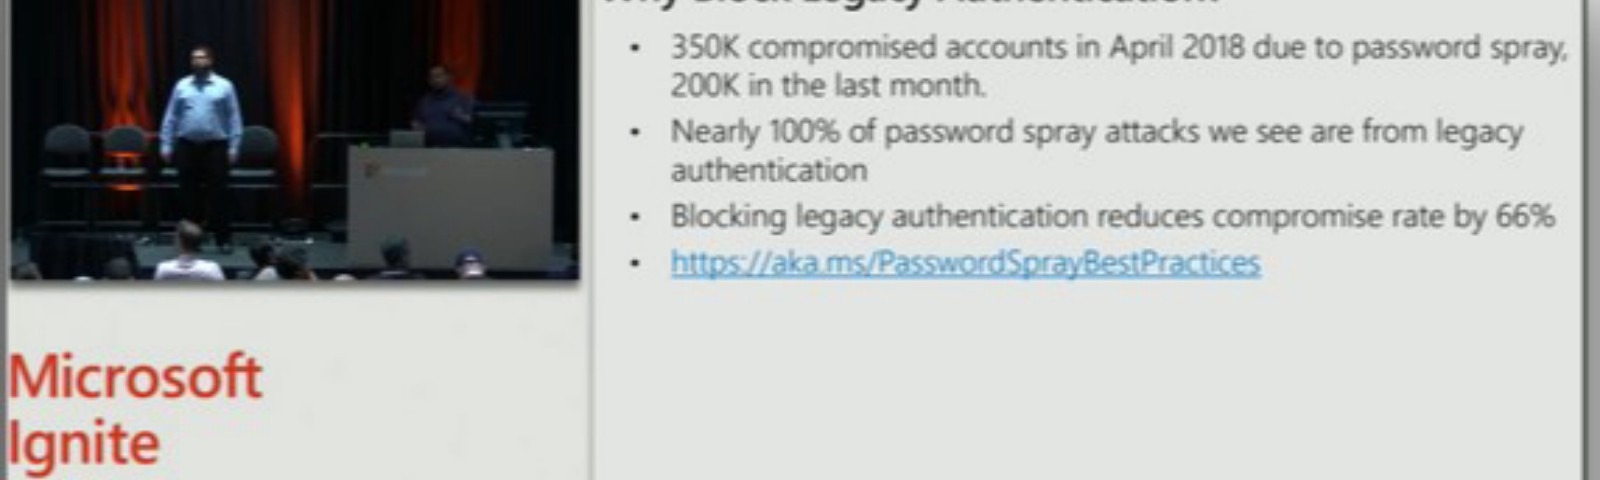 Modern Authentication & Blocking Legacy authentication